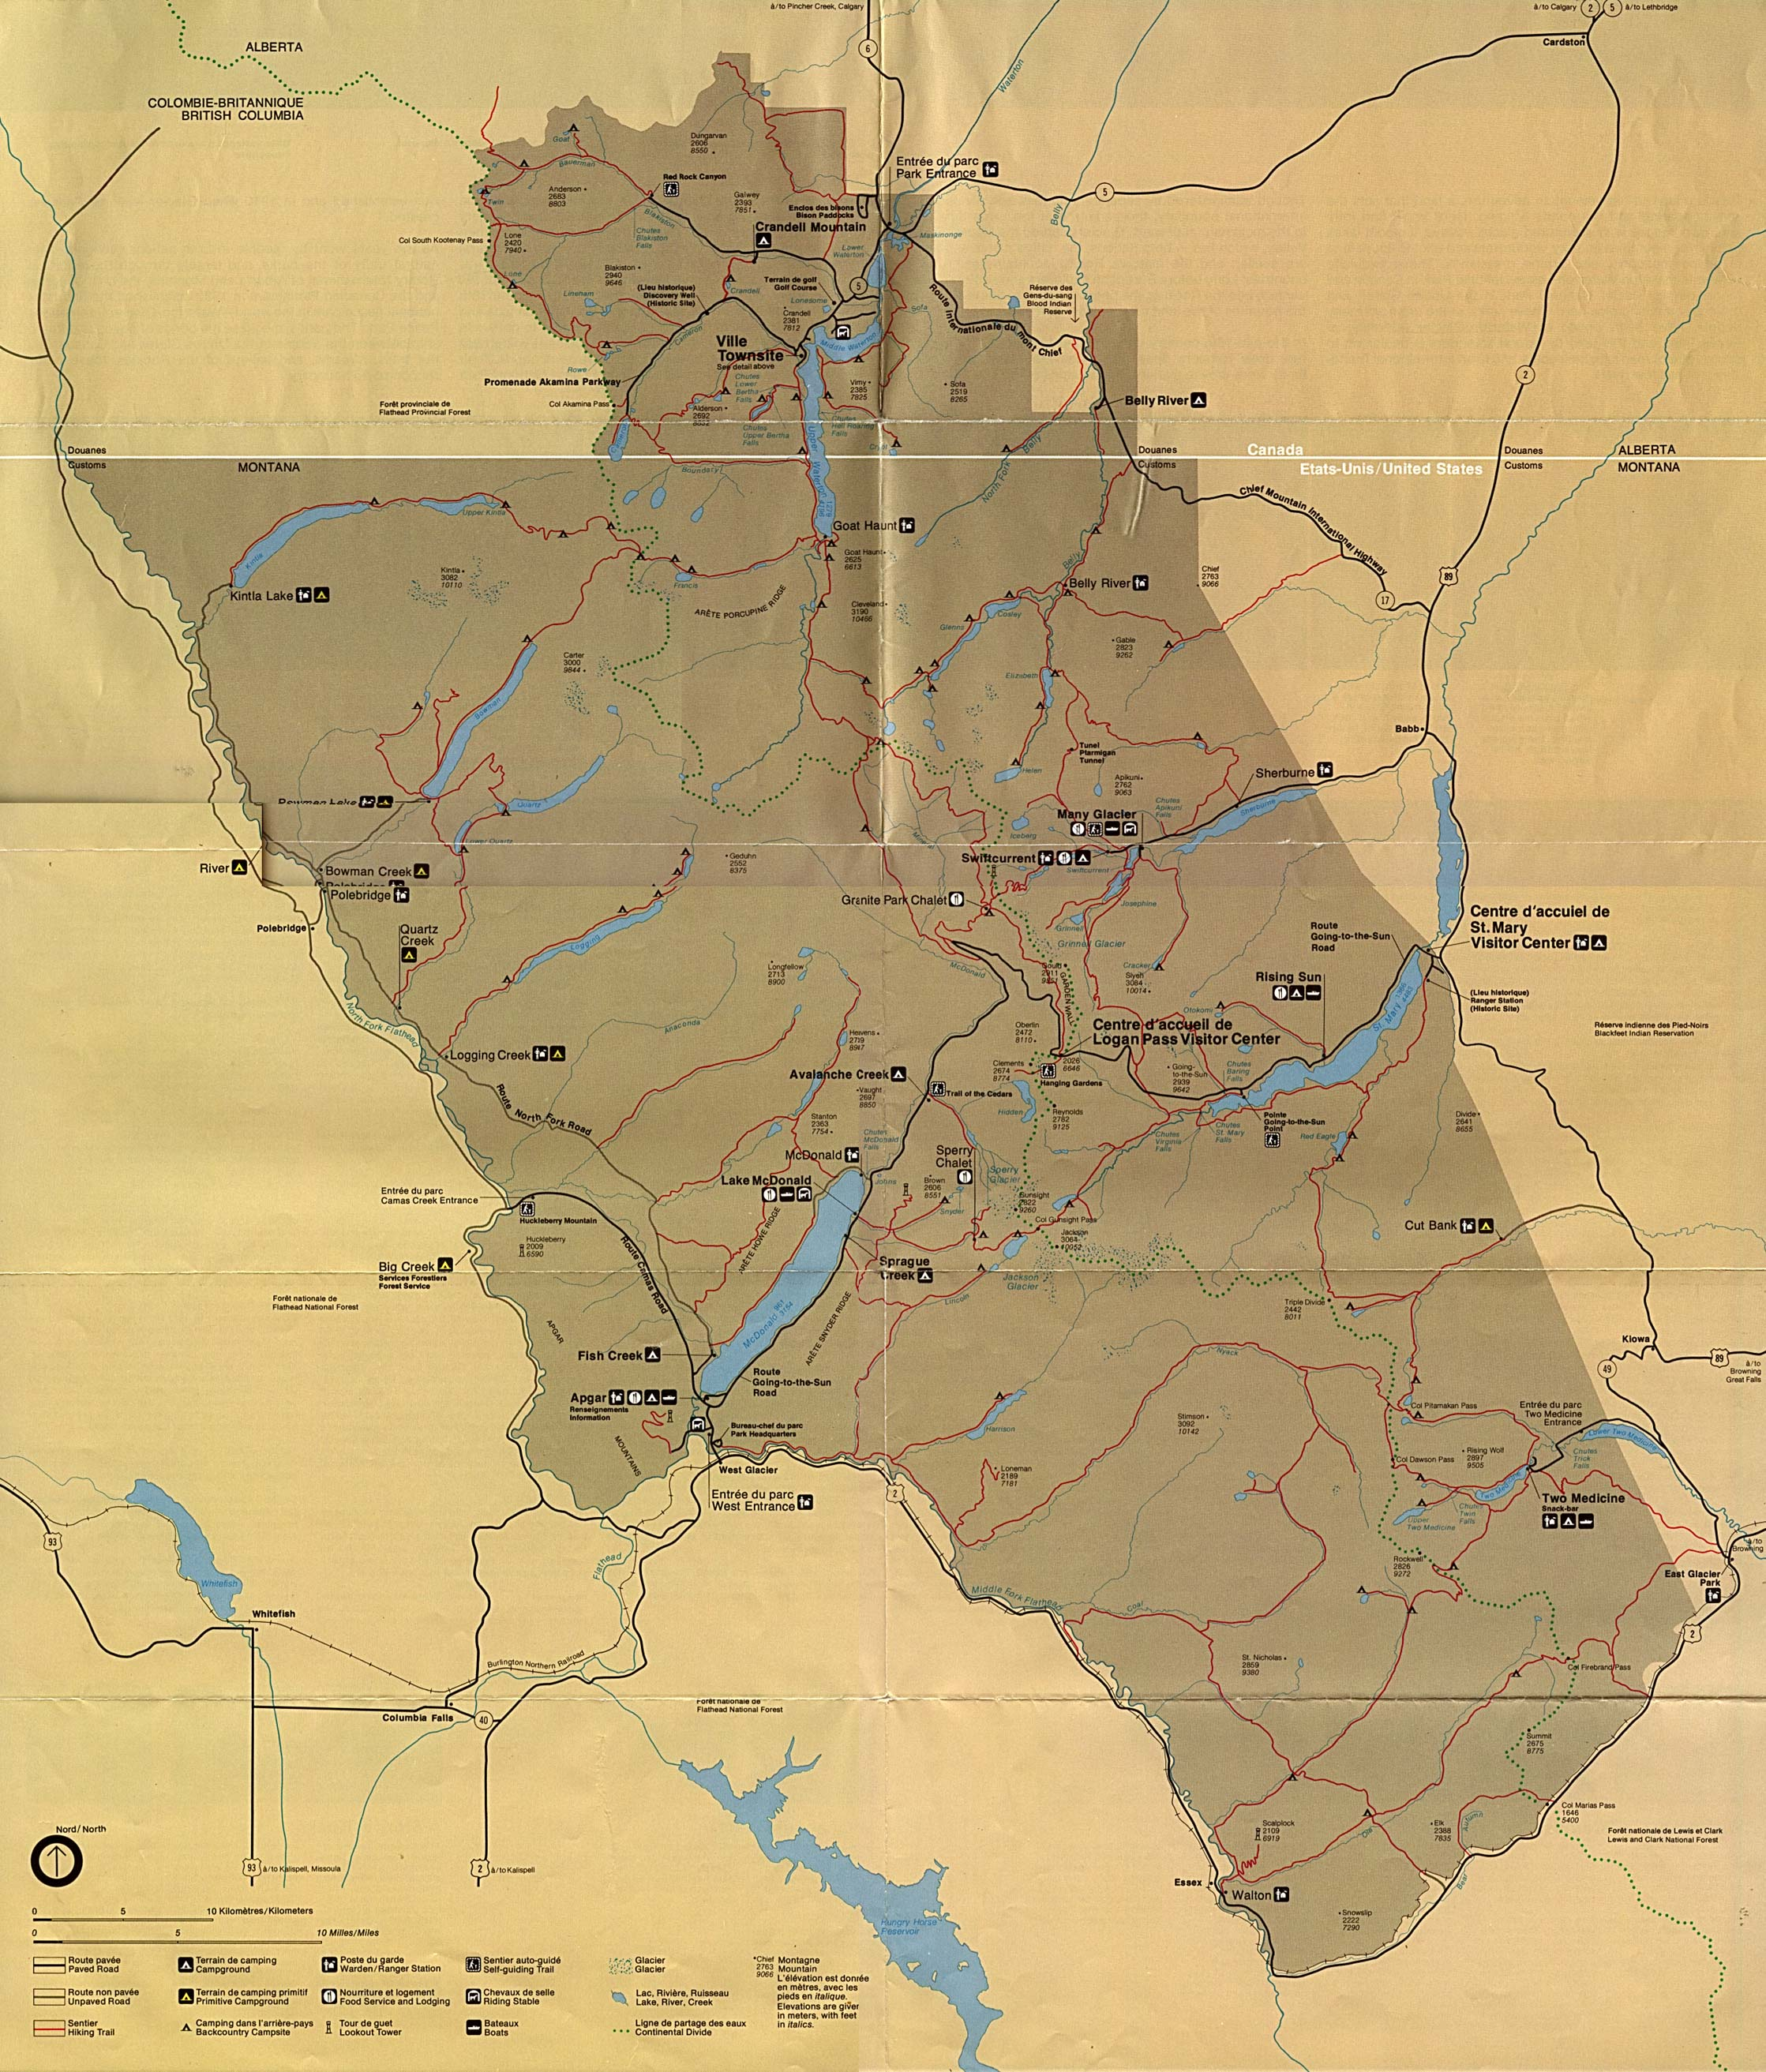 Free Download Montana National Park Maps - Map of us parks